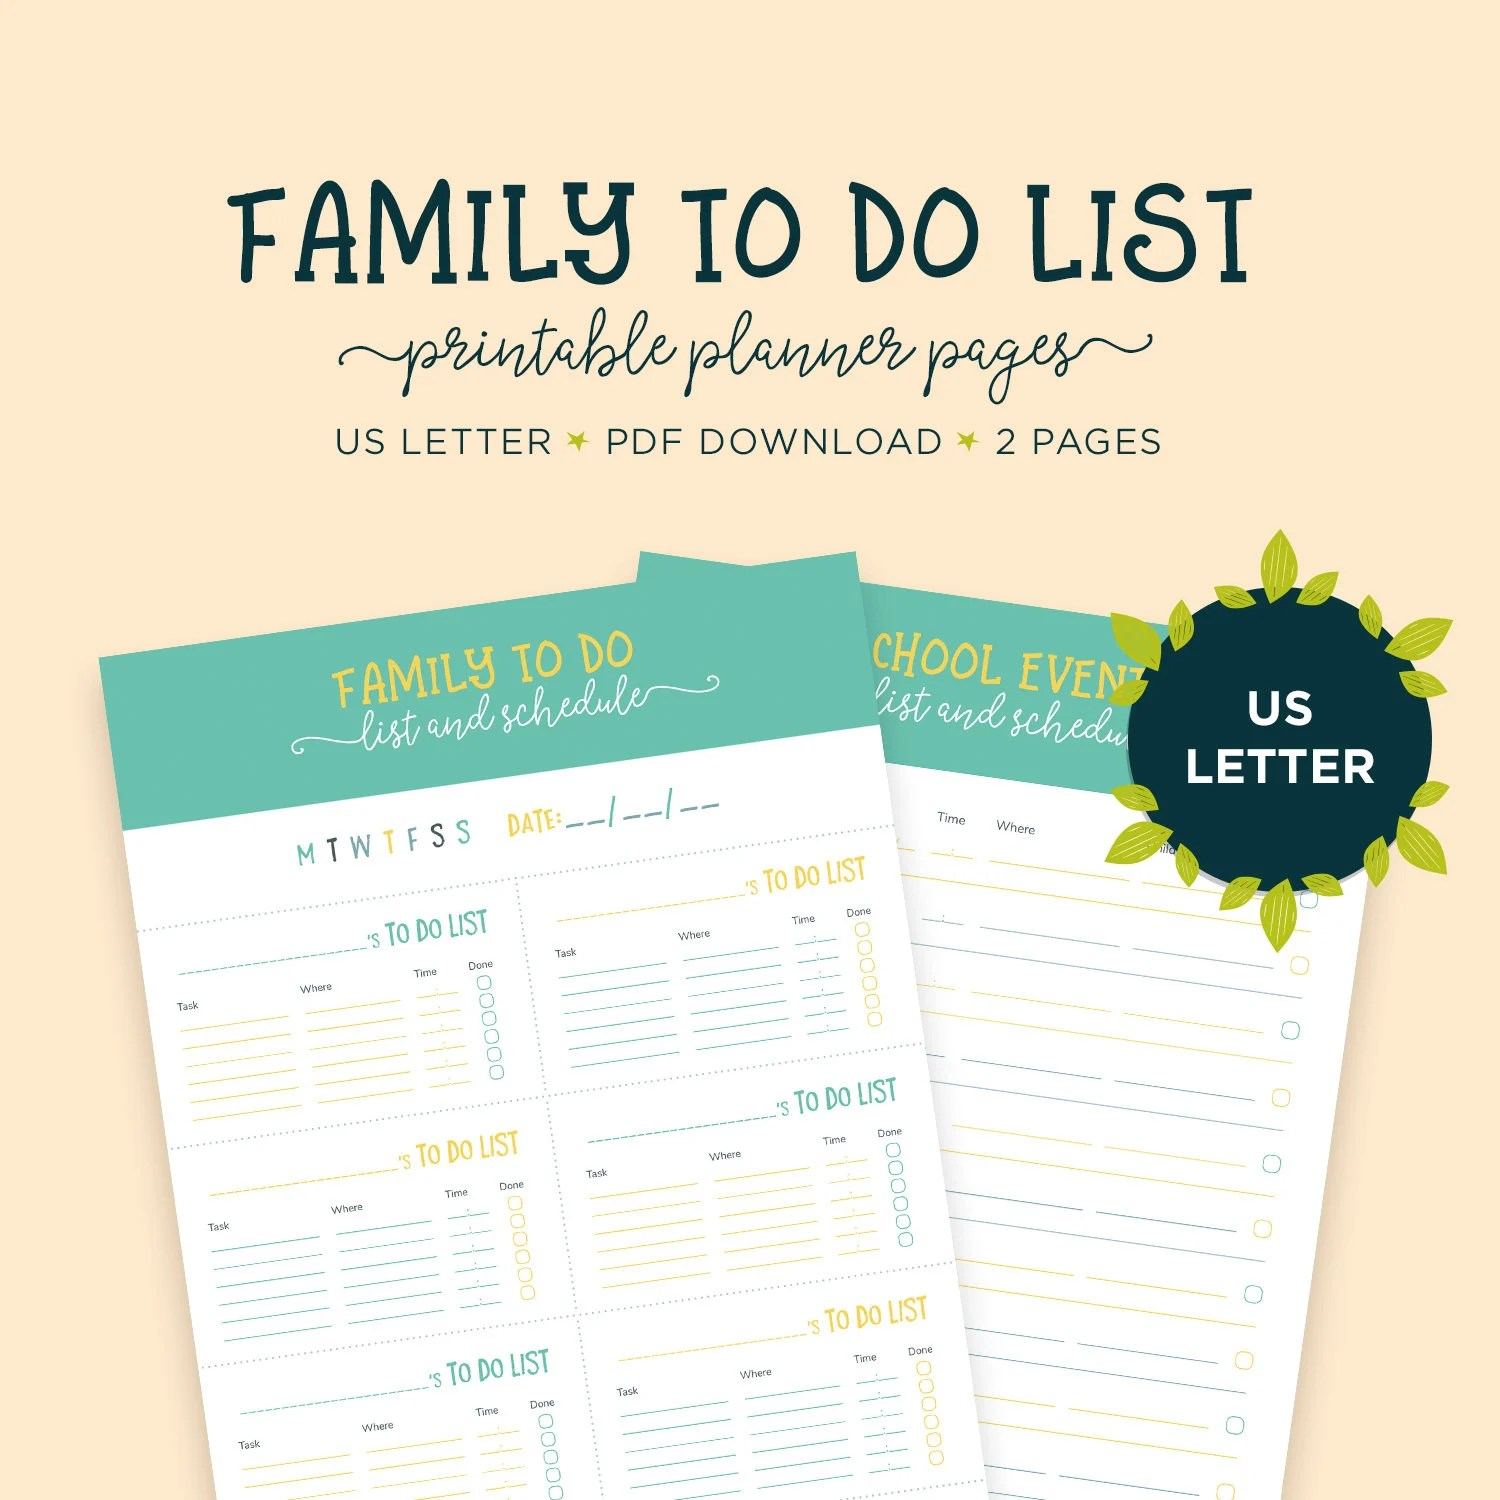 Family Chores Daily Schedule Letter Size Chore Chart Kids